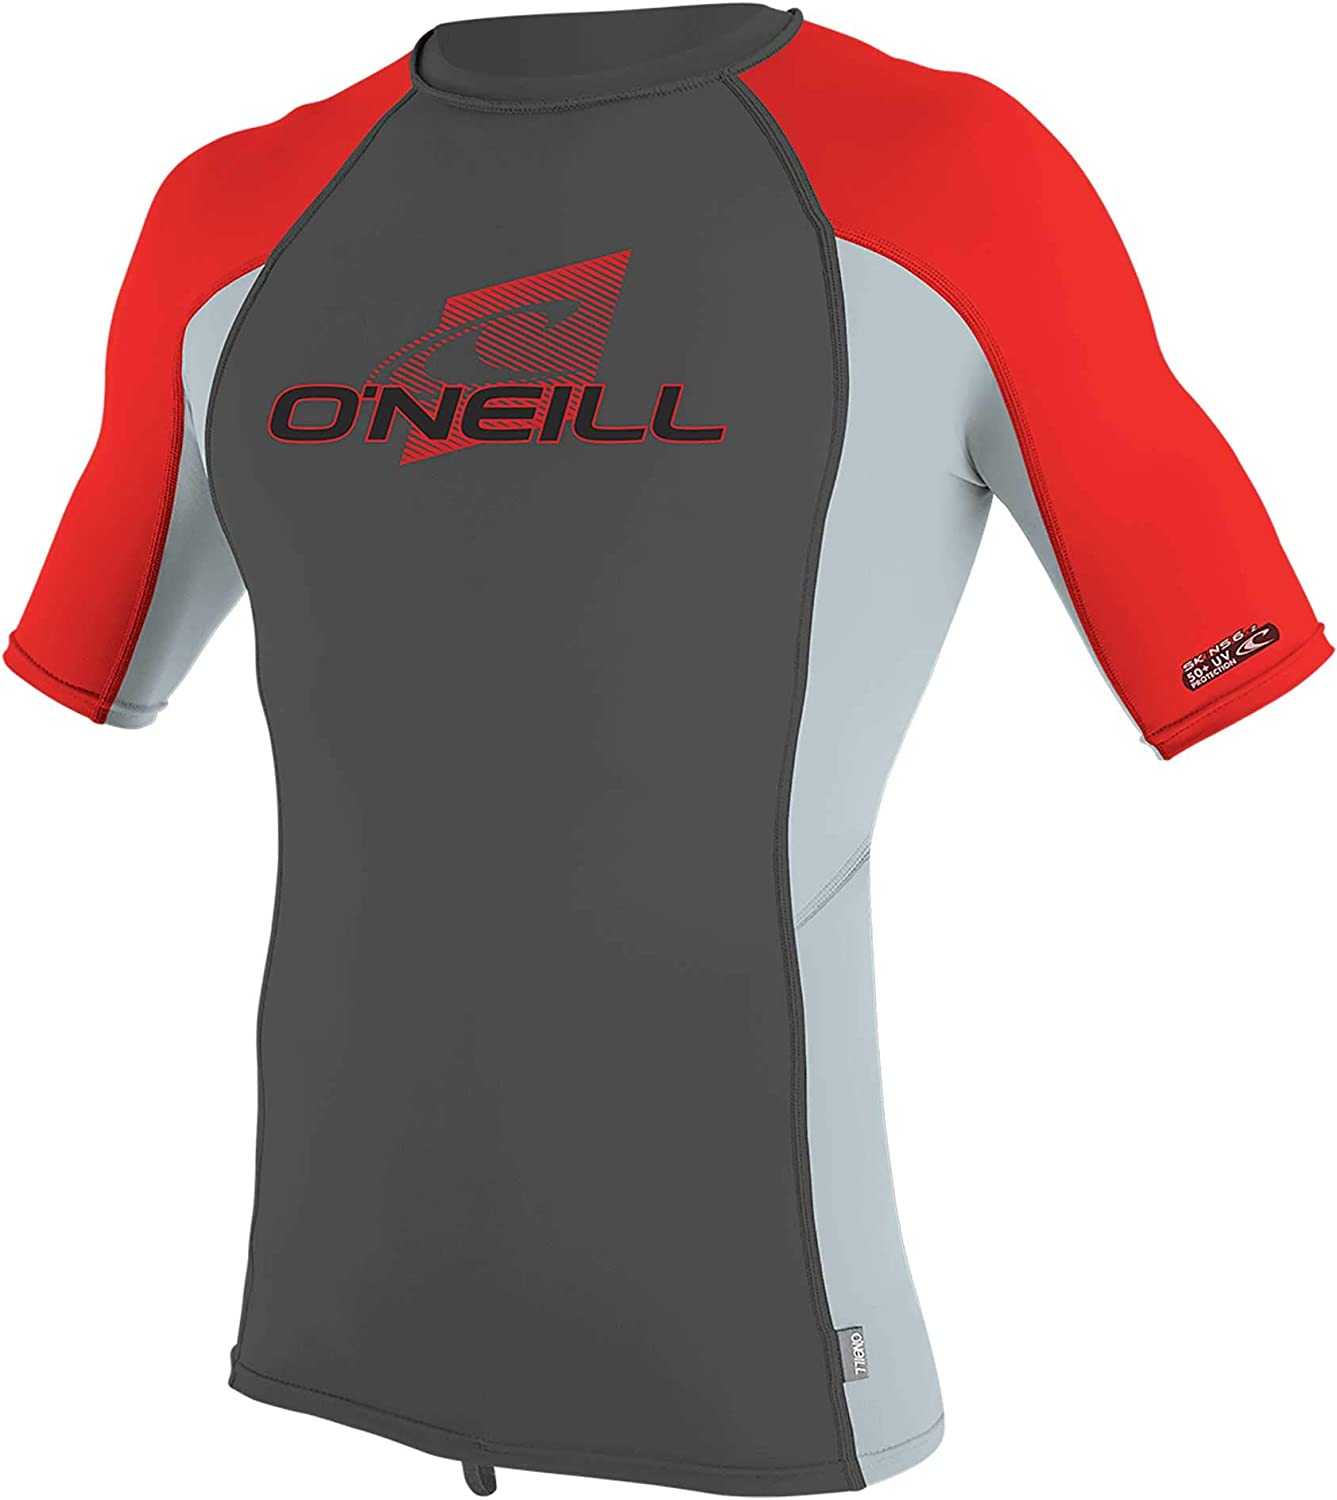 O'Neill Youth Premium Skins UPF 50+ Short Sleeve Rash Guard, Raven/Cool Grey/Red, 12